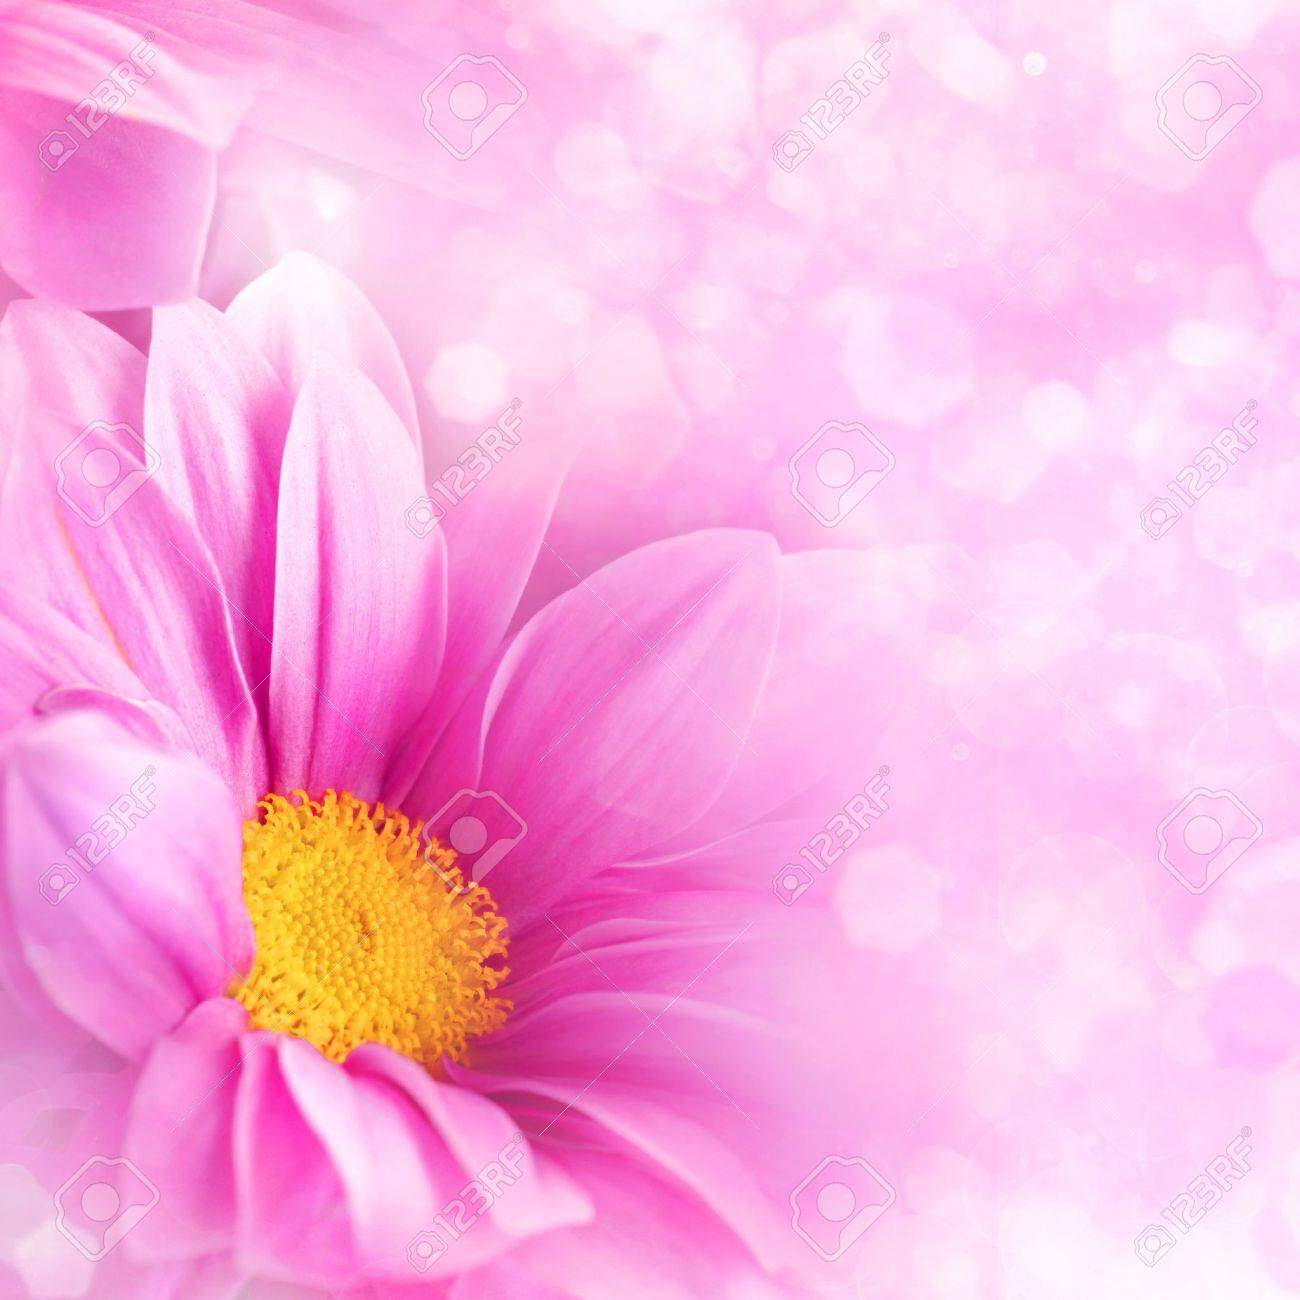 Abstract Floral Backgrounds For Your Design Stock Photo Picture